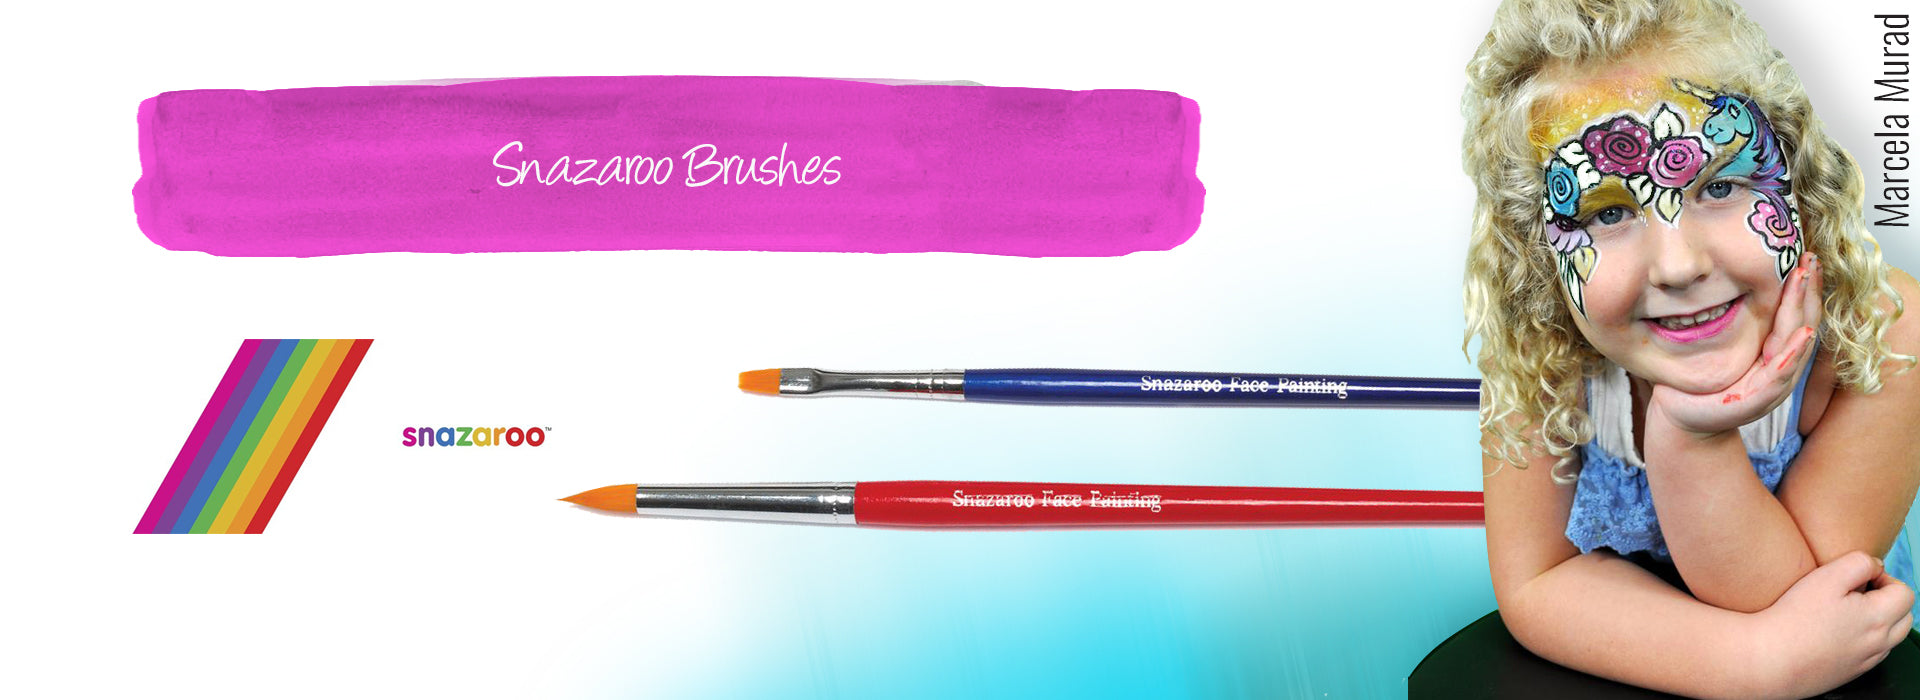 Snazaroo Brushes and Sponges